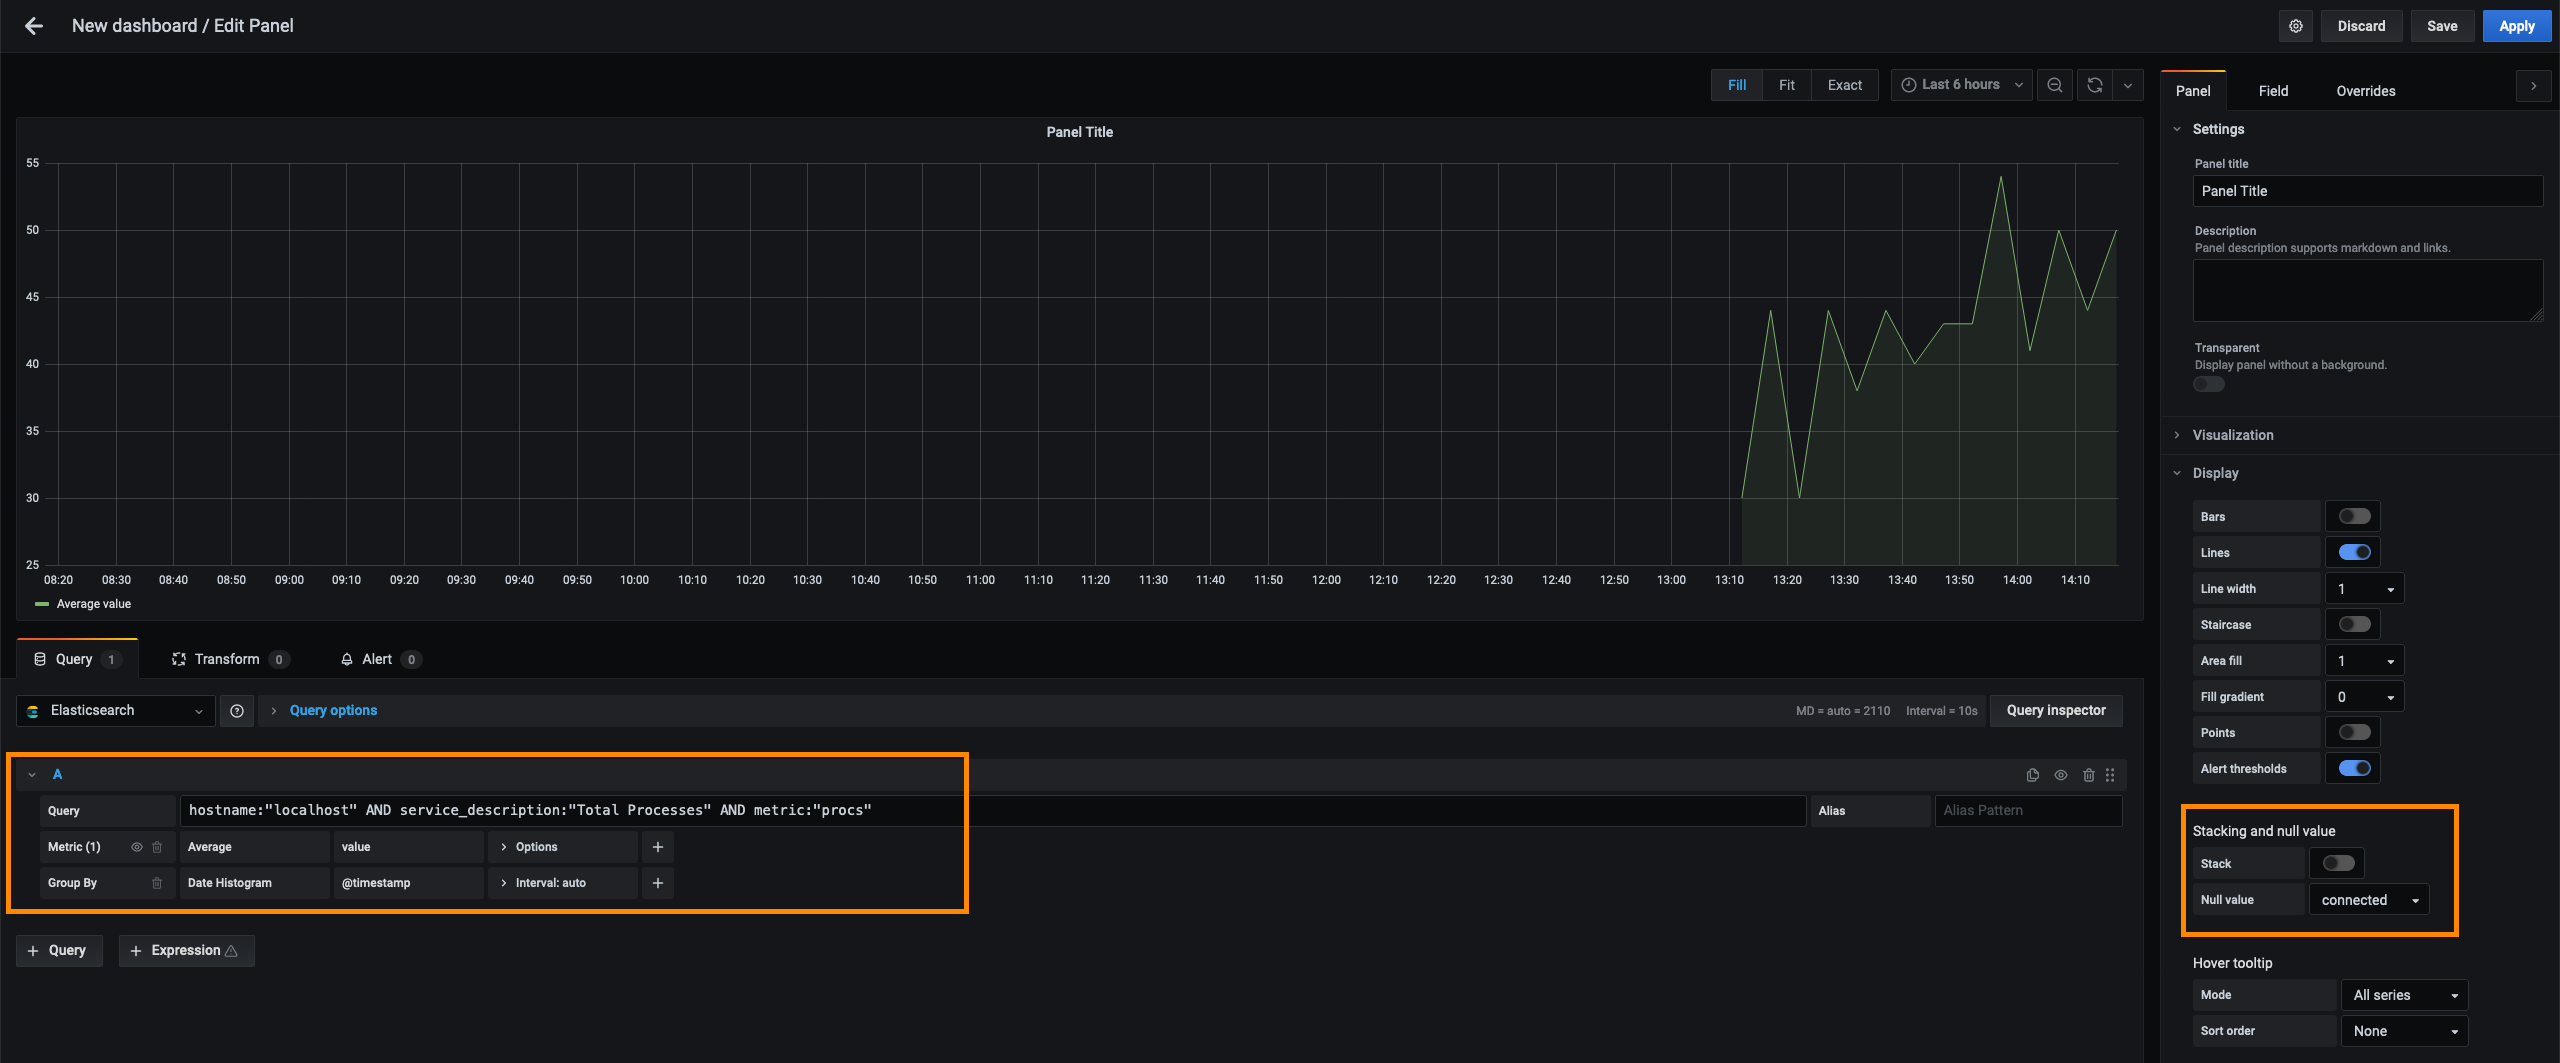 Query data from Elasticsearch with Grafana